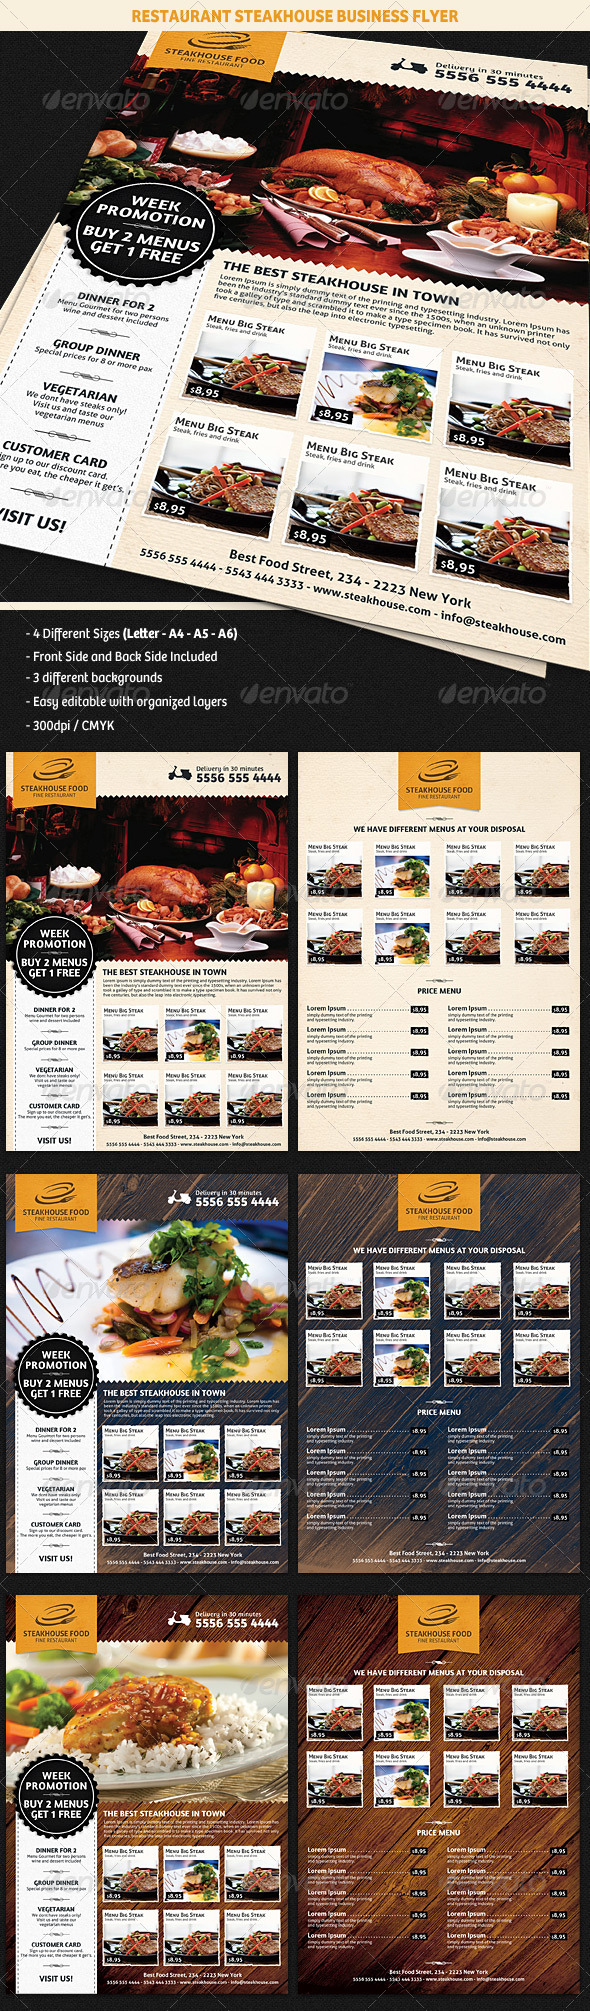 GraphicRiver Restaurant SteakHouse Advertising Business Flyer 5197647